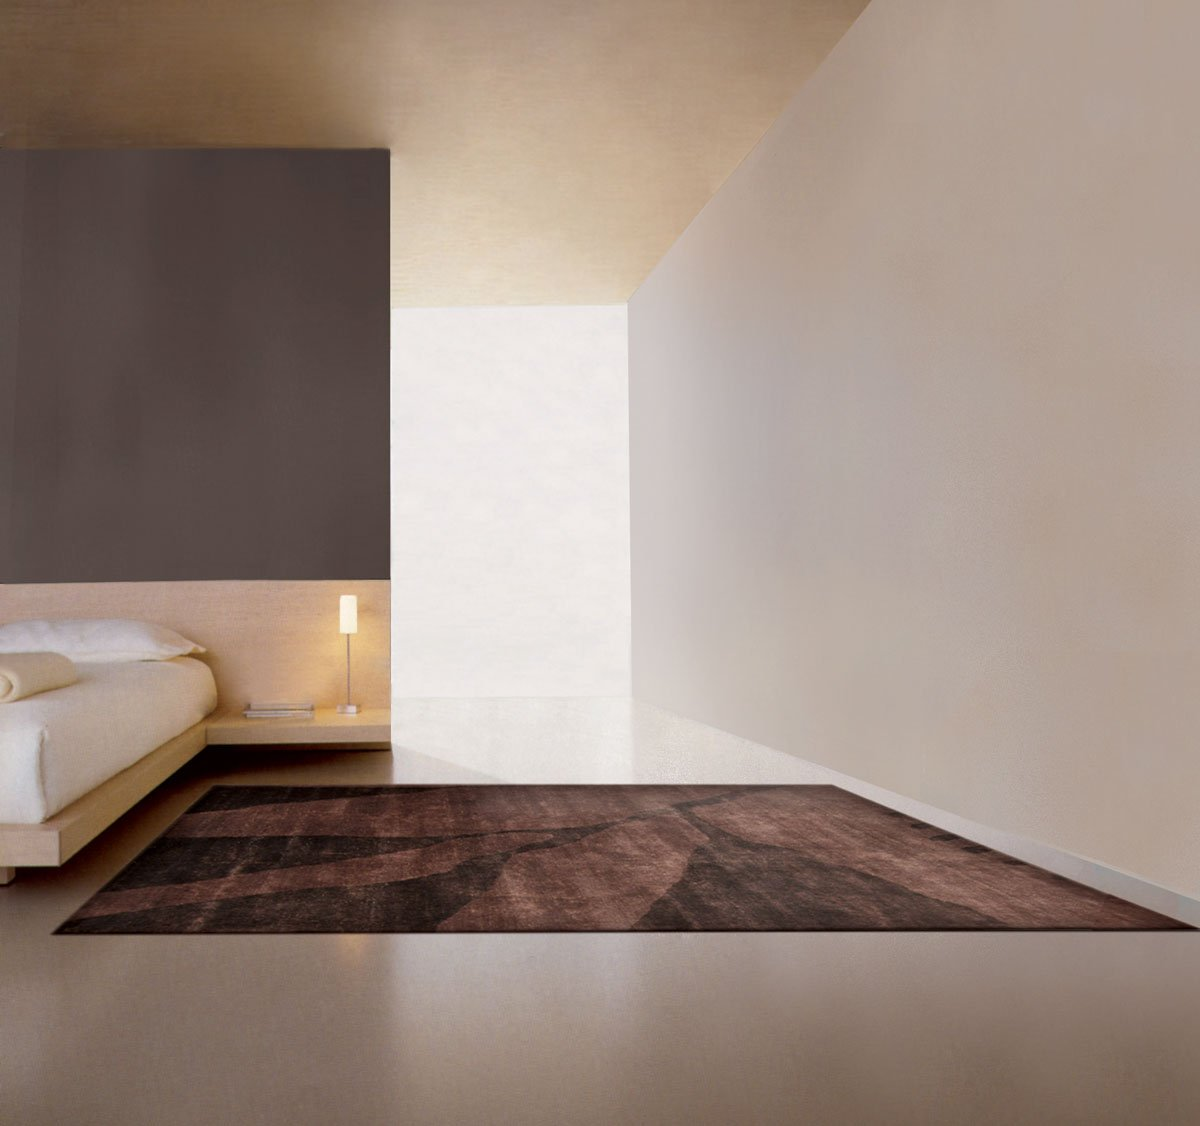 Kuete mo handknotted rug in wool by kristiina lassus for for Kristiina lassus